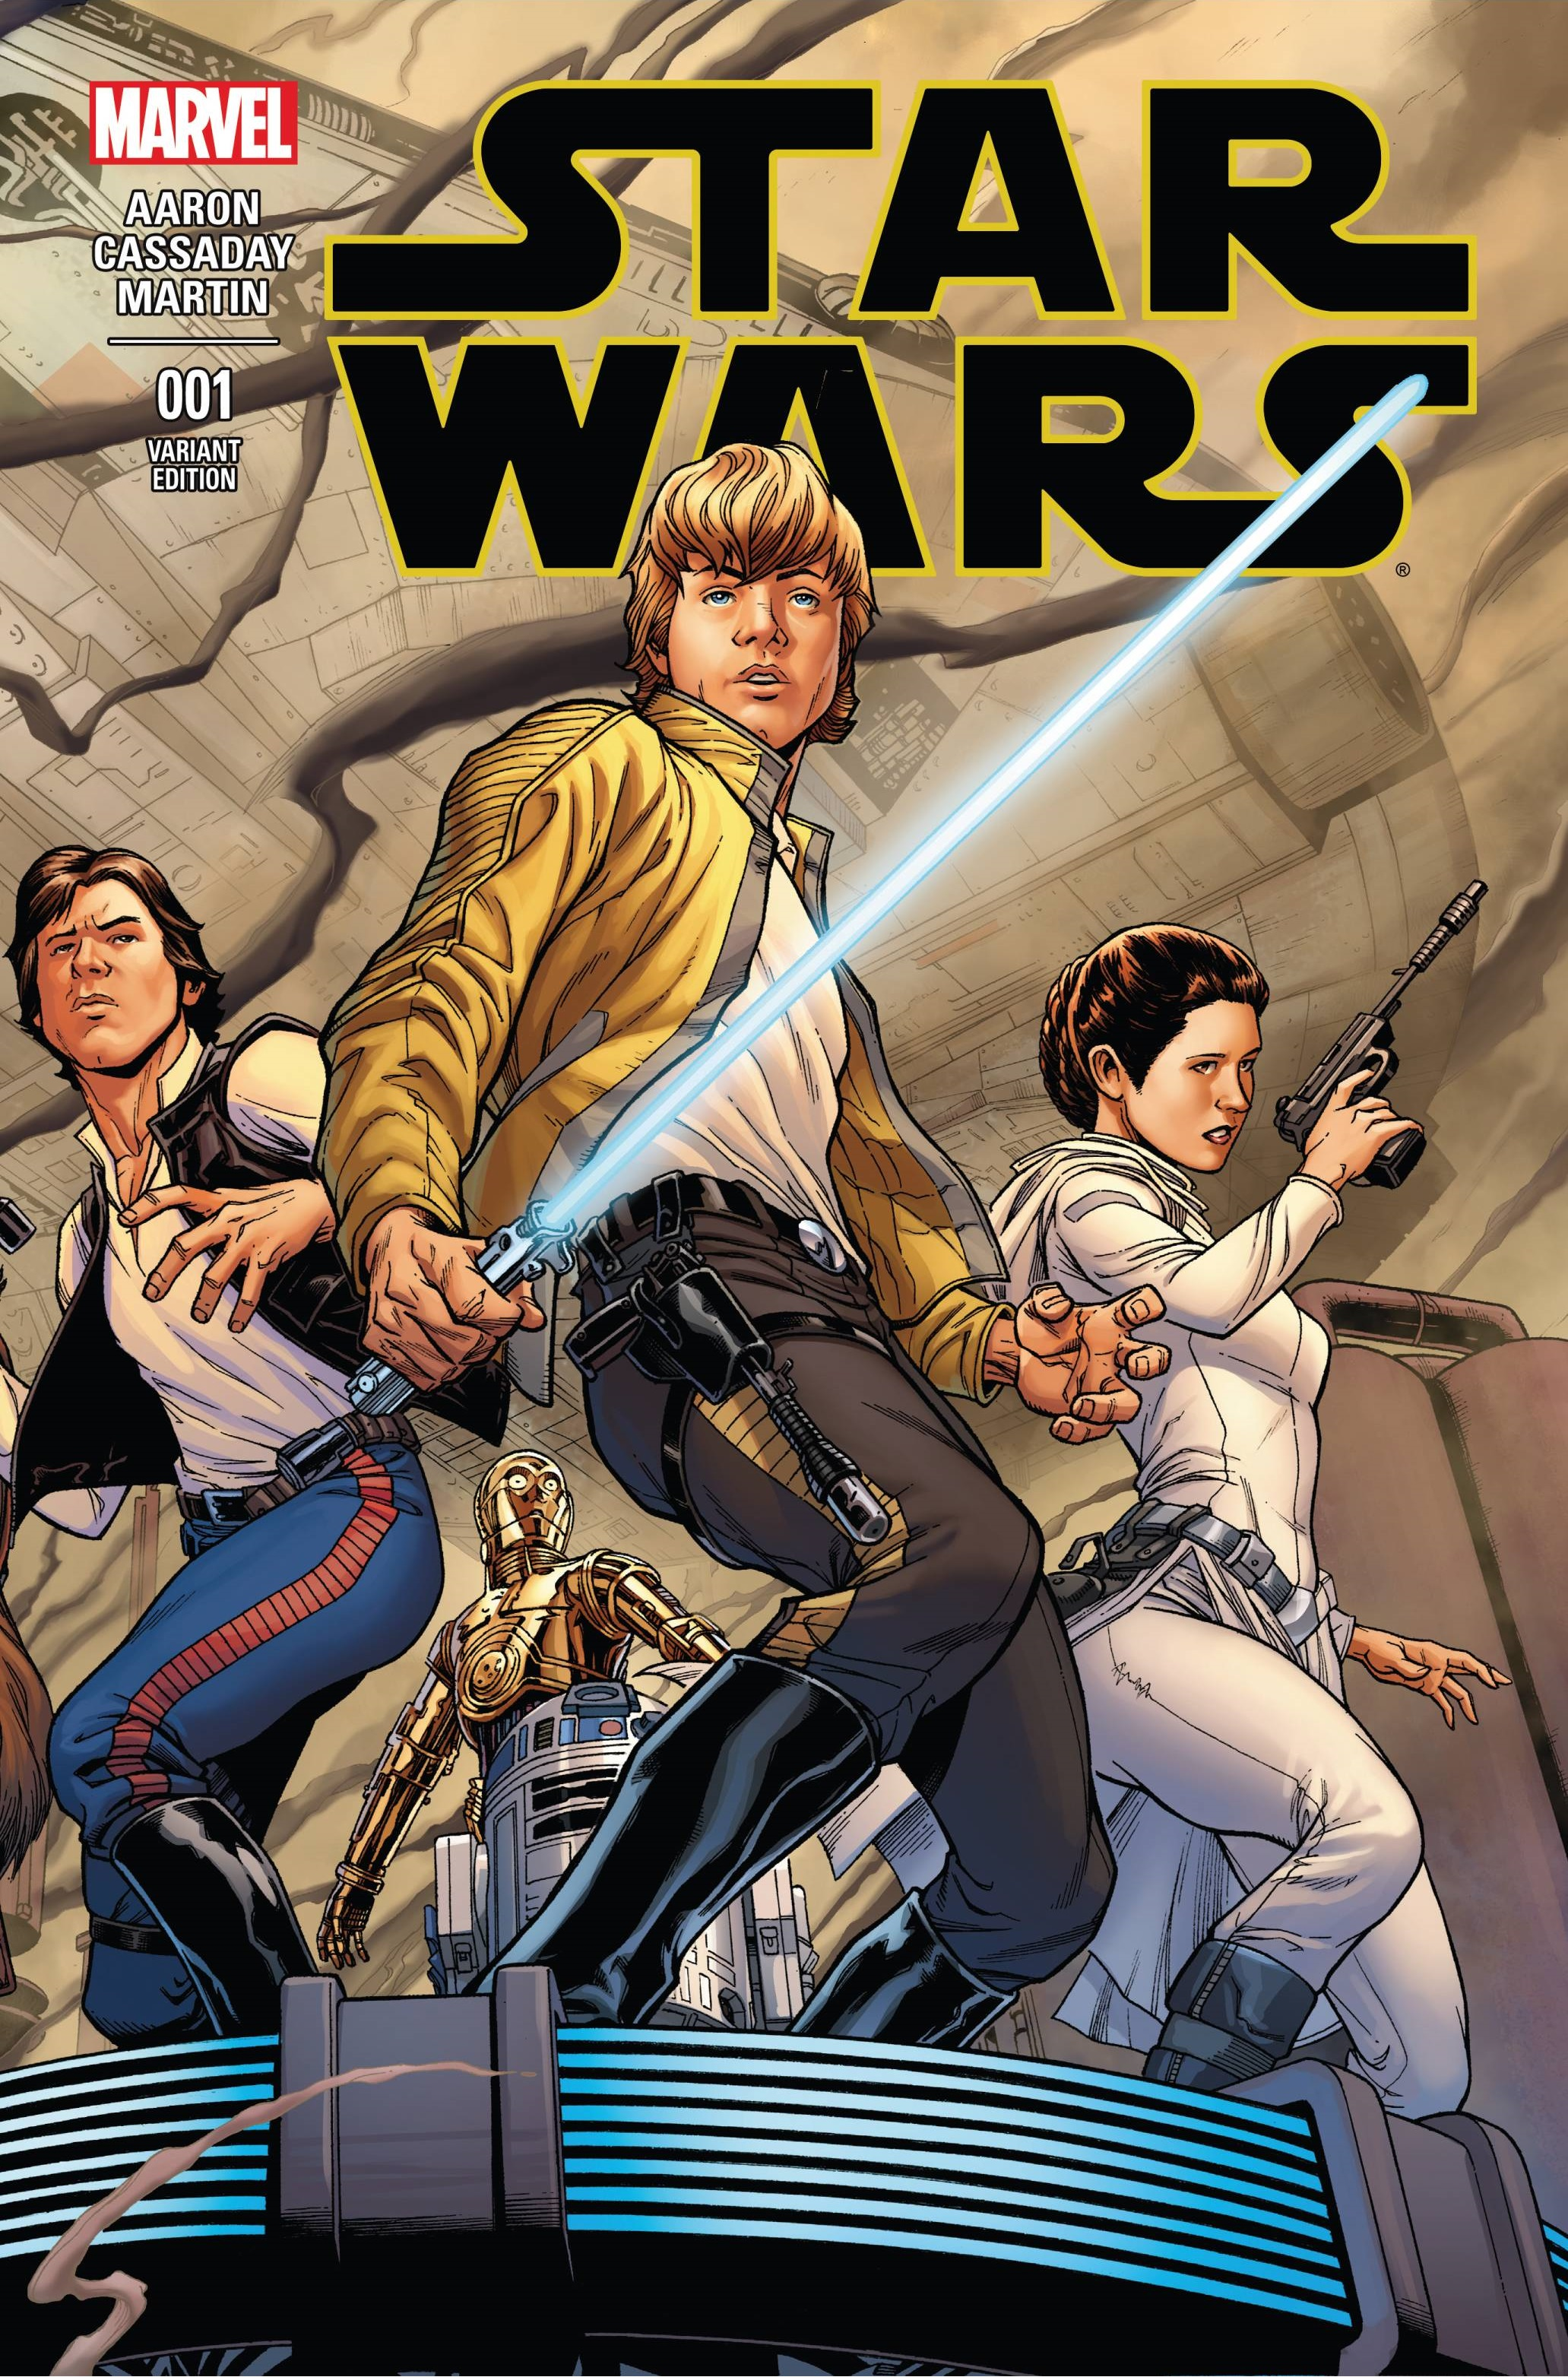 Star Wars #1 (Joe Quesada Variant Cover) (14.01.2015)